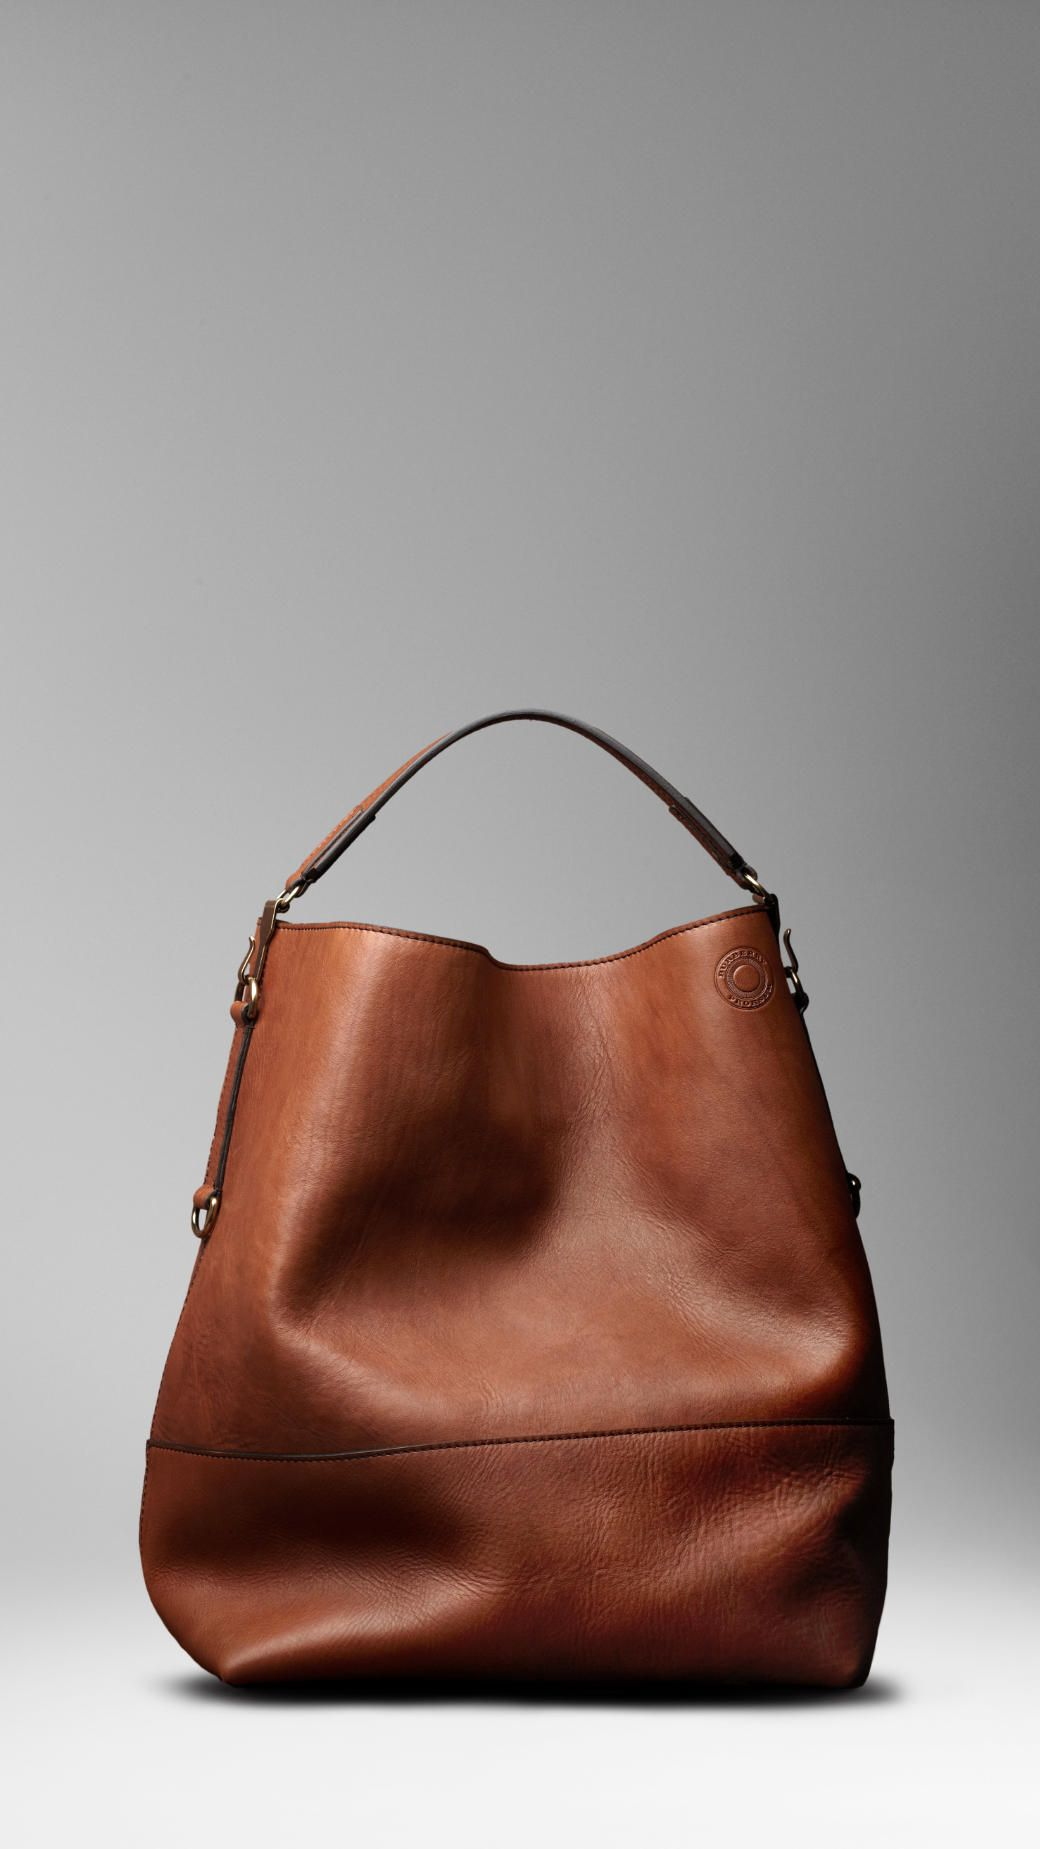 0cacb138f1e9 Burberry - Large Washed Leather Duffle Bag MY CHRISTMAS WIIIIIIIISHHHHH    NEEEEED